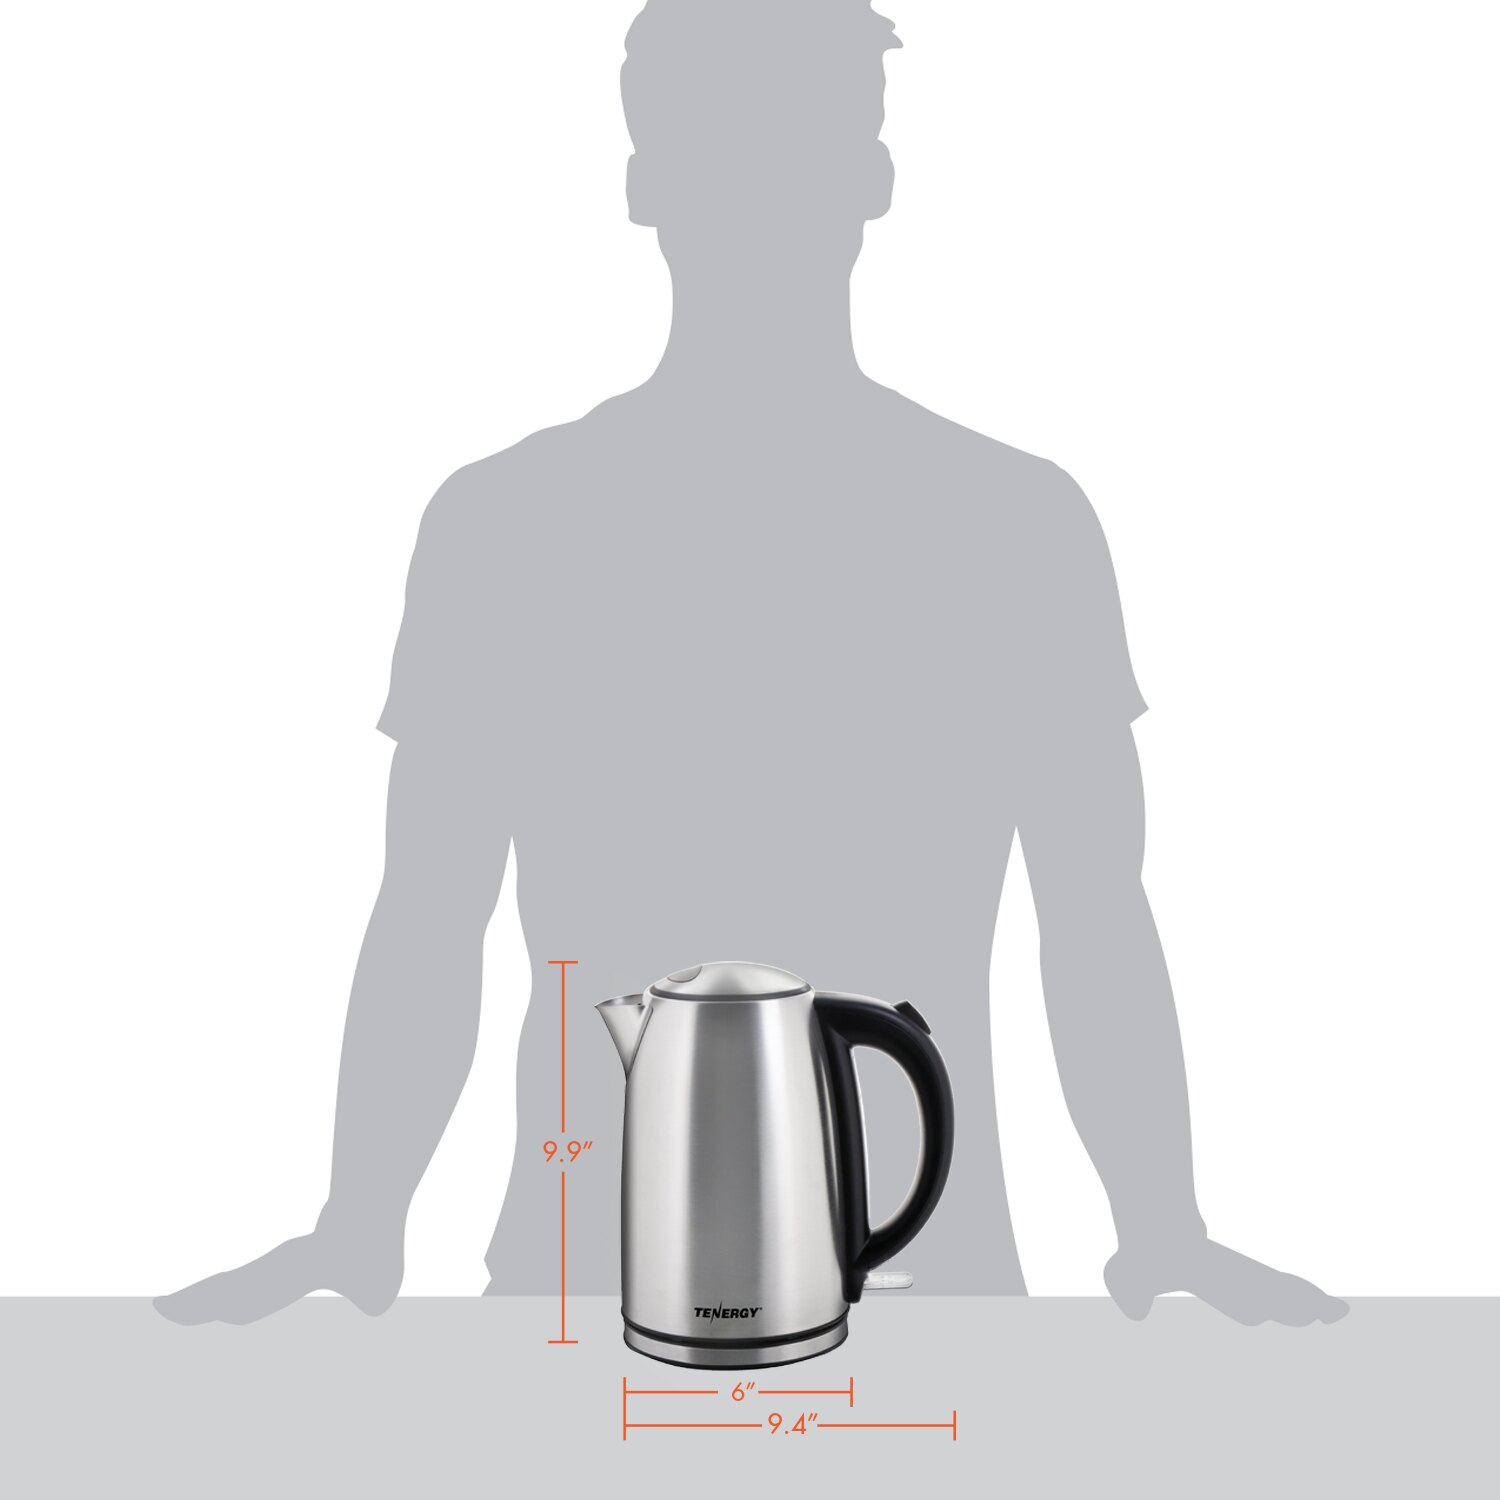 Tenergy: Tenergy Stainless Steel Electric Kettle 1.7L 1500W Fast ...